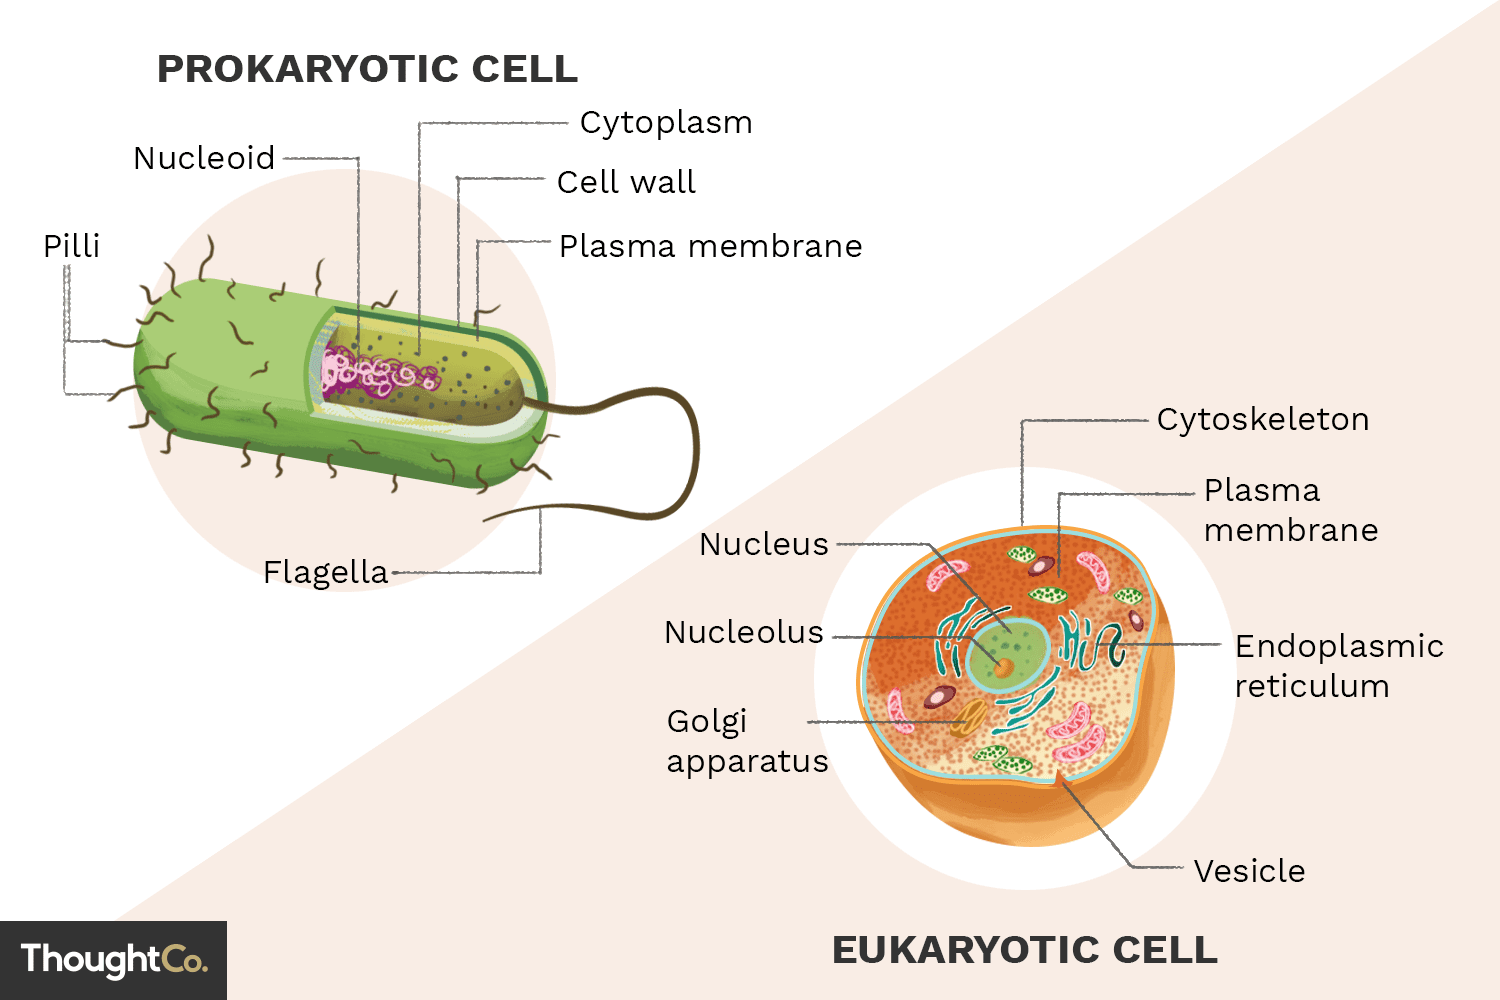 prokaryotic cell diagram ford sierra ignition wiring what are the differences between prokaryotes and eukaryotes